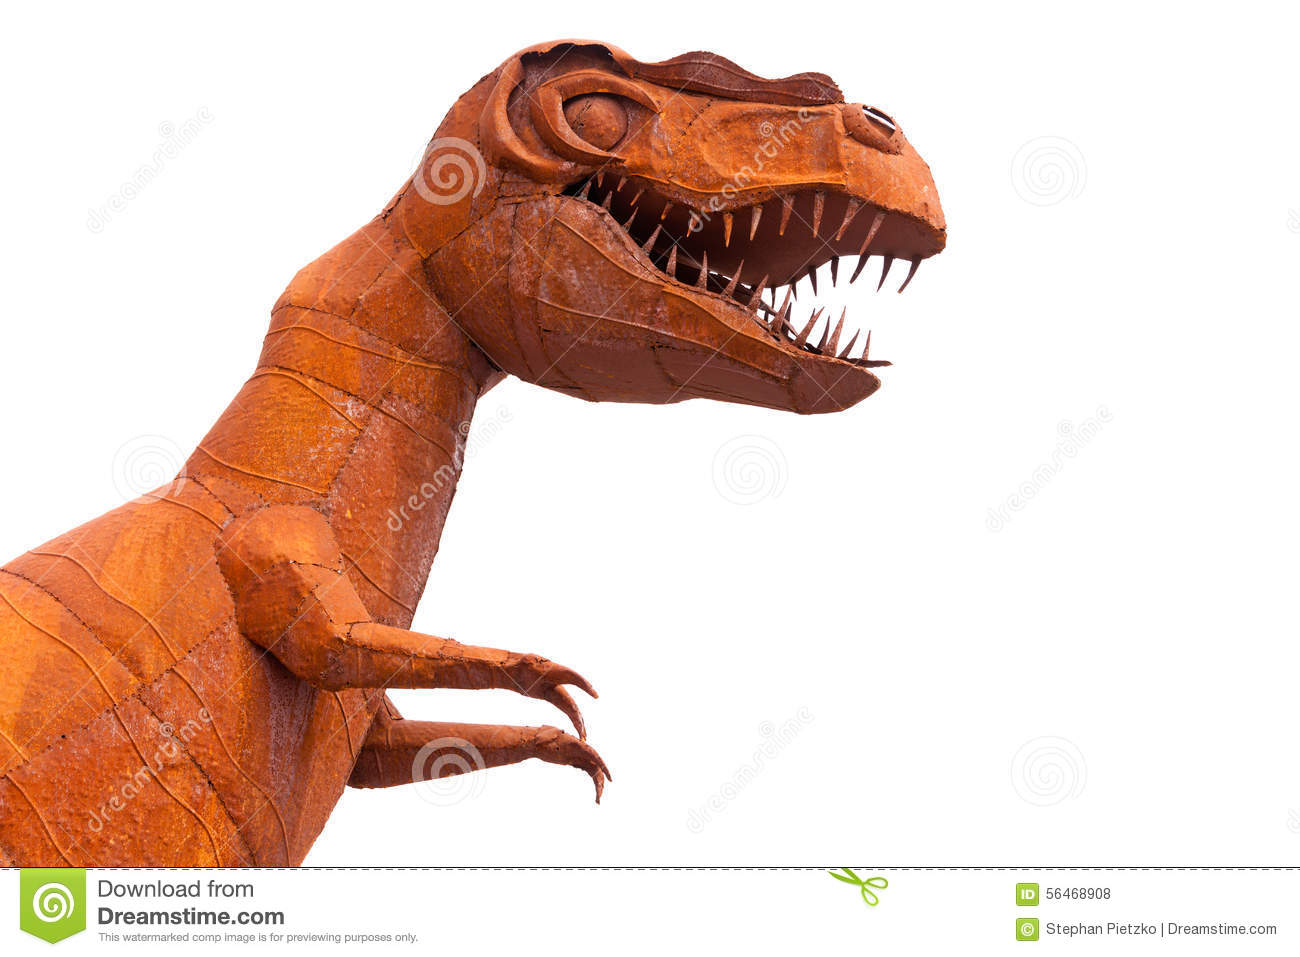 Tyrannus saurus rex dinosaur sculpture stock photo image of download tyrannus saurus rex dinosaur sculpture stock photo image of tyrannus sheet 56468908 thecheapjerseys Image collections